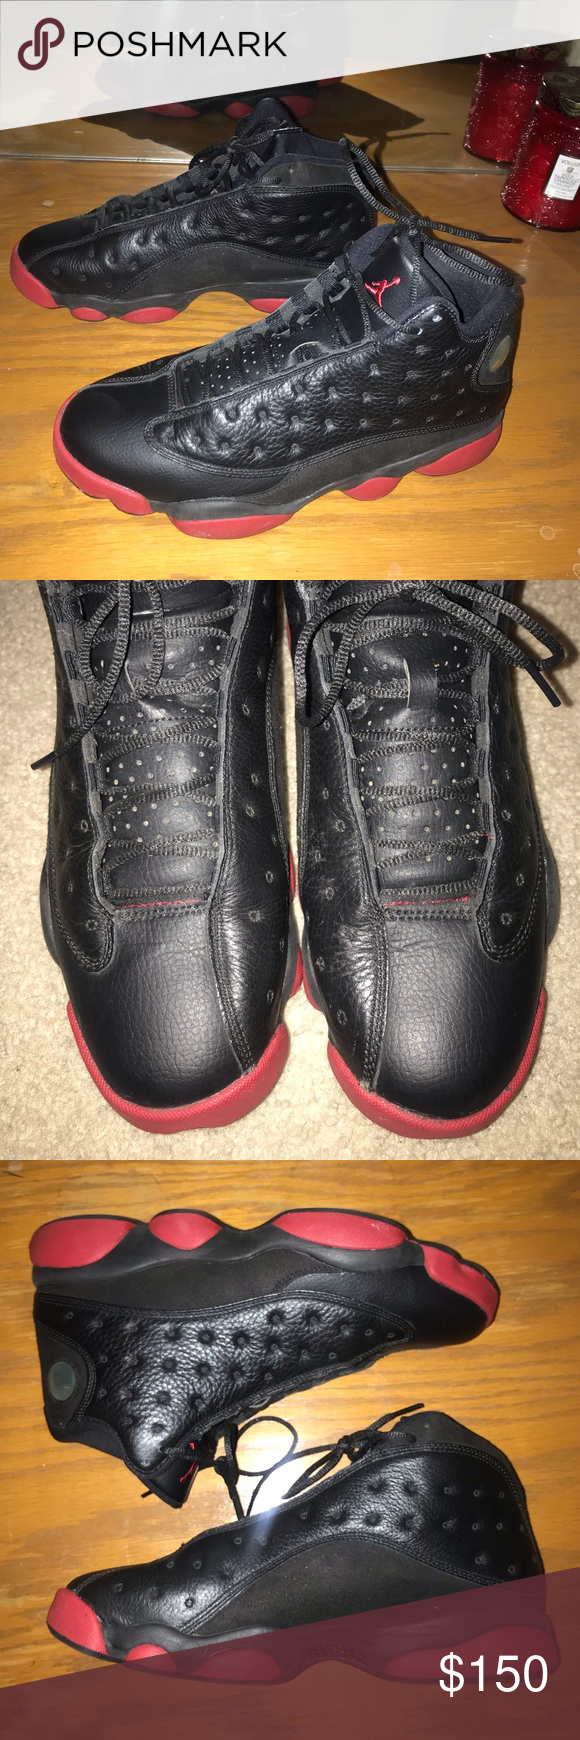 timeless design 75231 d917b Men s Air Jordan 13 released 2014 Air Jordan 13 black red released December  2014, worn a couple times, before being put in storage since January 2015.